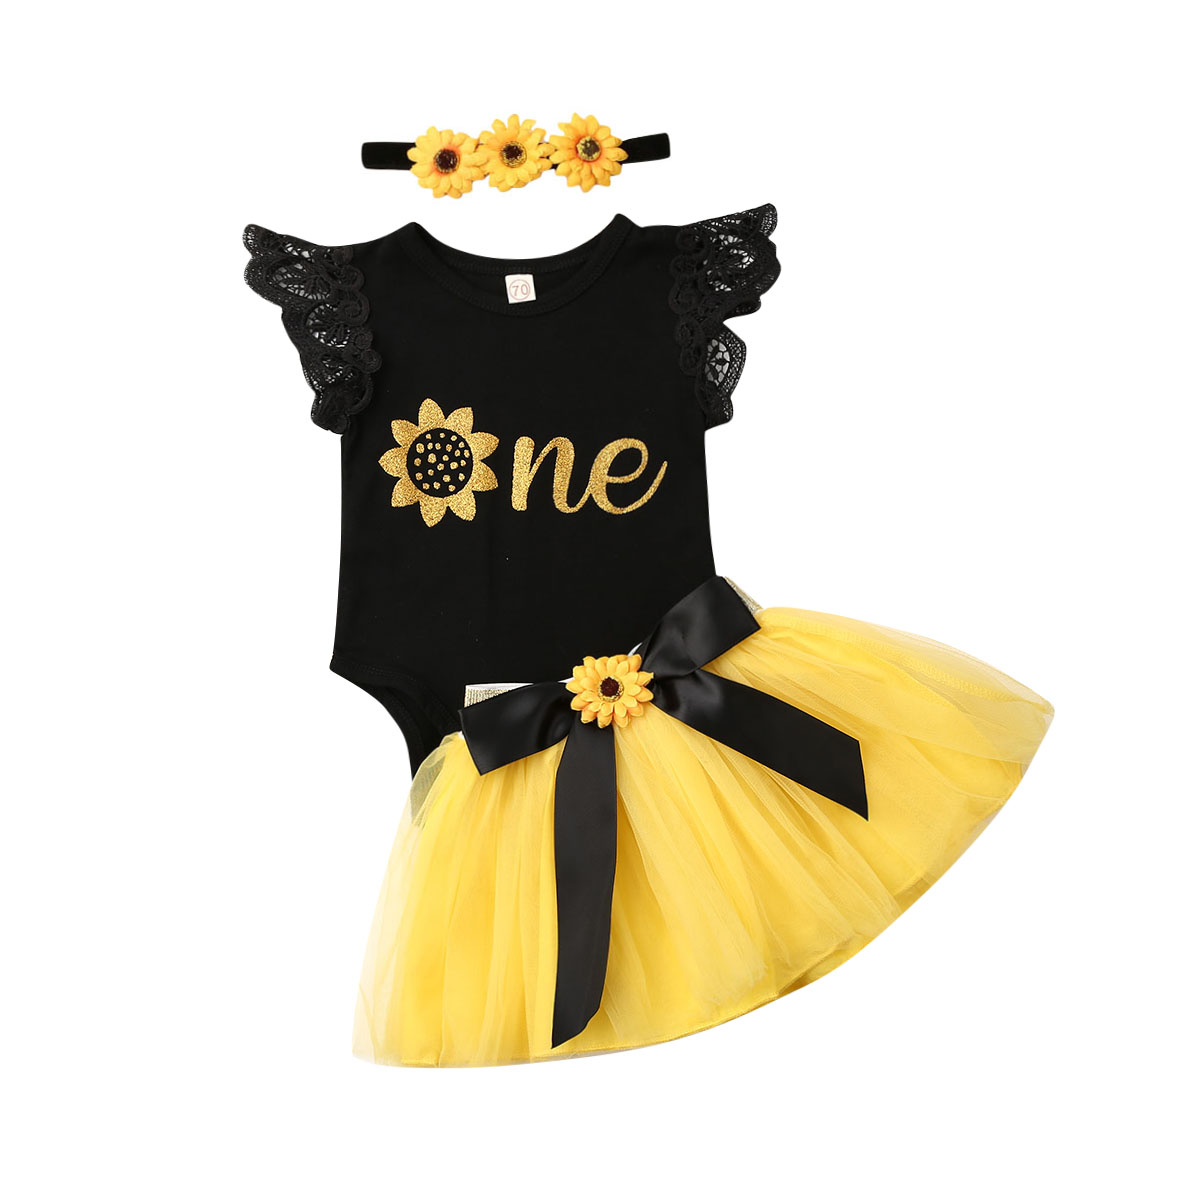 Baby Girl 1st Birthday Outfits Romper Bottoms Headband Cake Smash Costume Sets